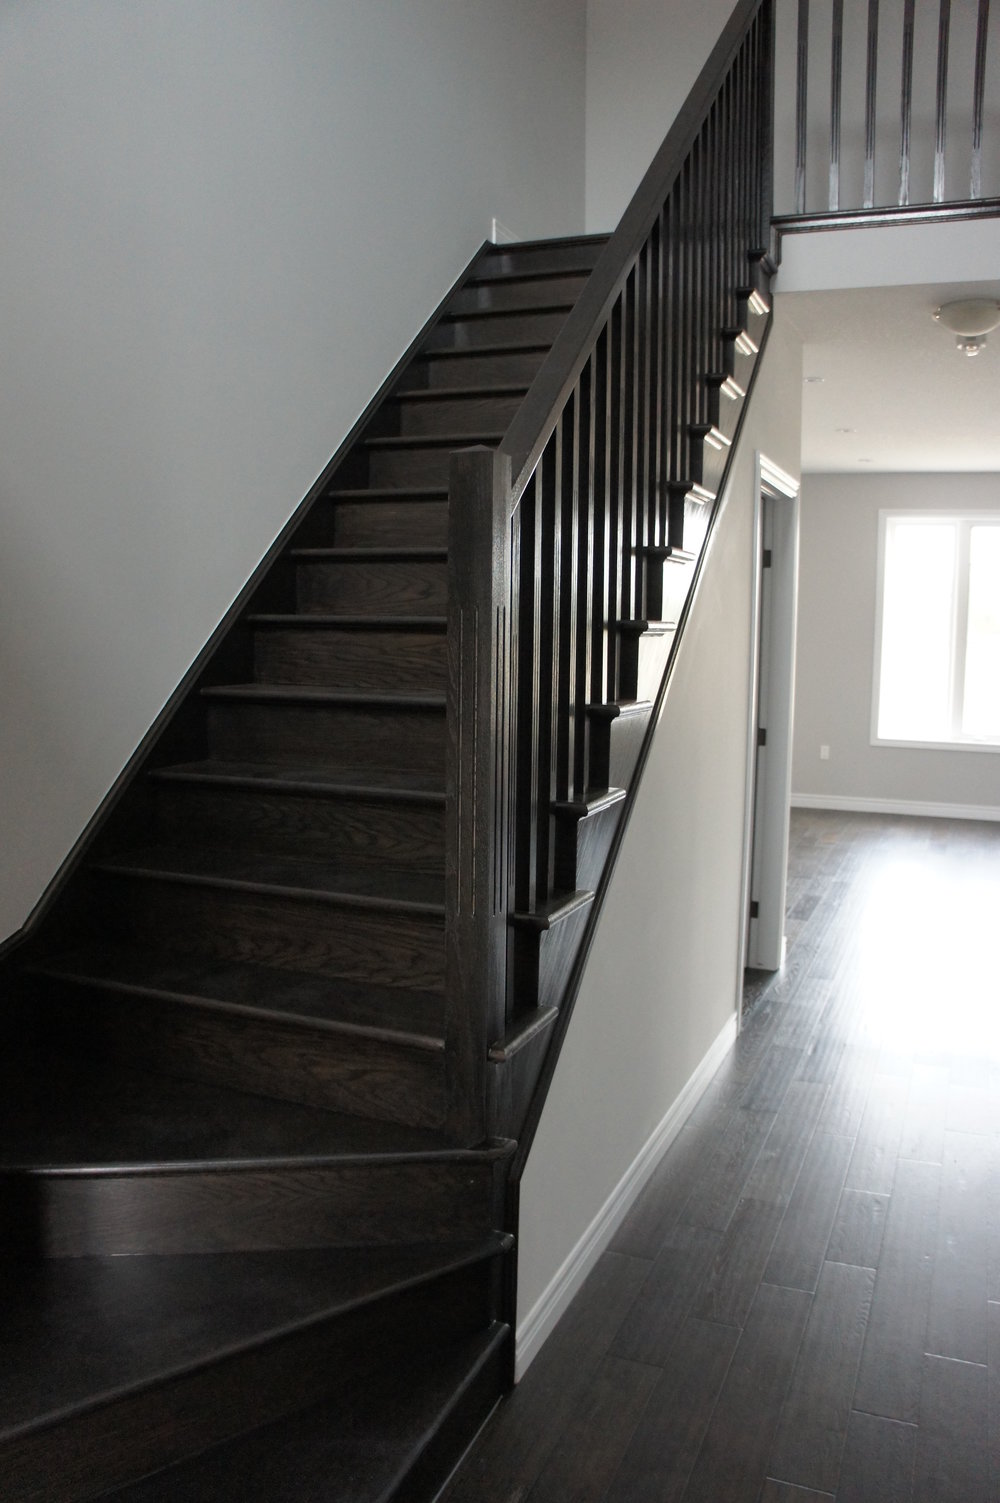 Hardwood Staircase   Make a statement that will last a lifetime by selecting a hardwood staircase. The beauty of natural wood will add value and character to your home. Customize your staircase with handrails, spindles, posts and stain.